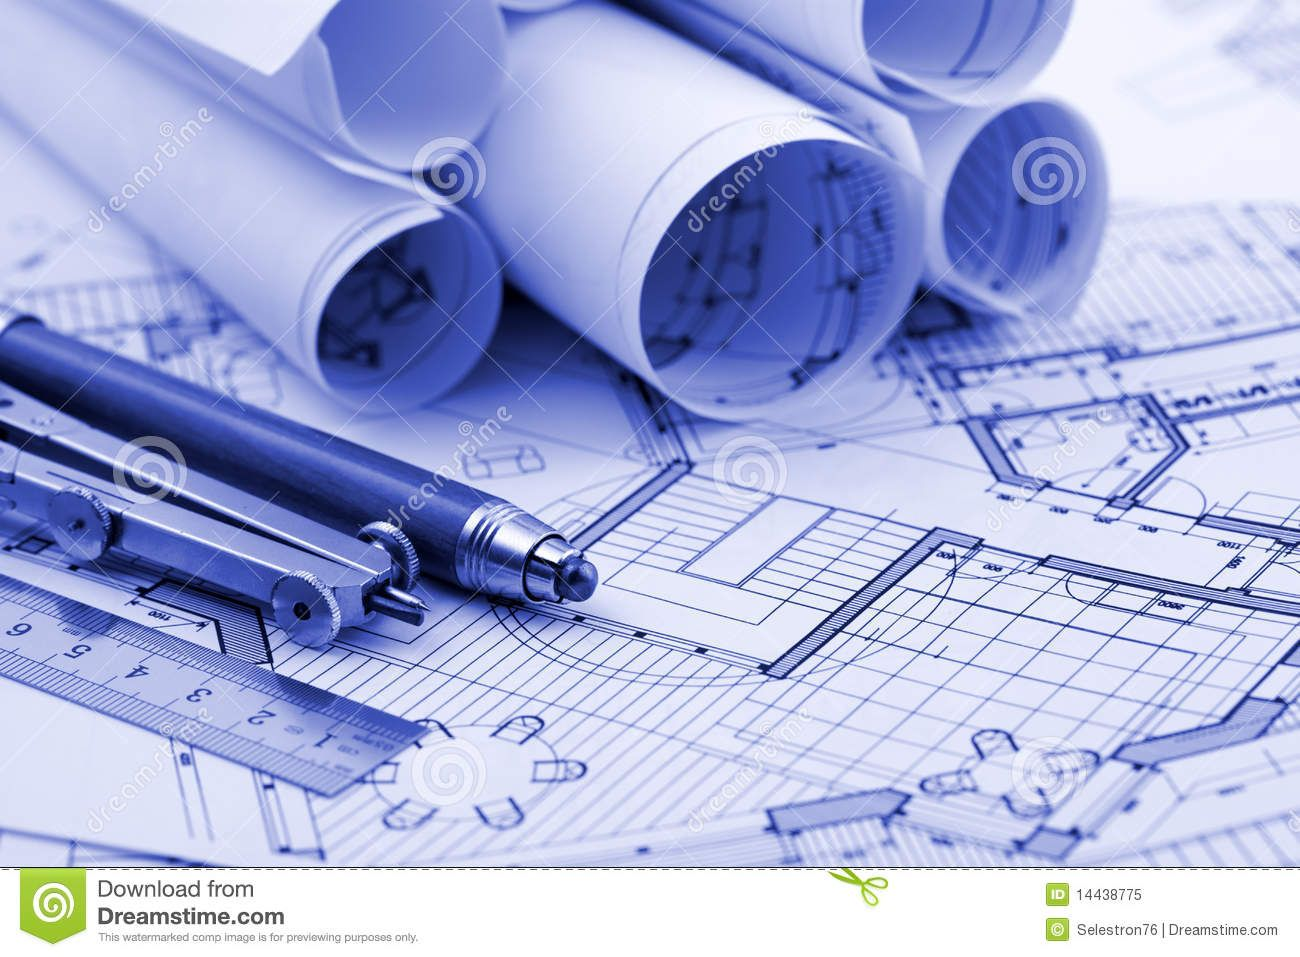 rolls architecture blueprint work tools 14438775jpg 1300957